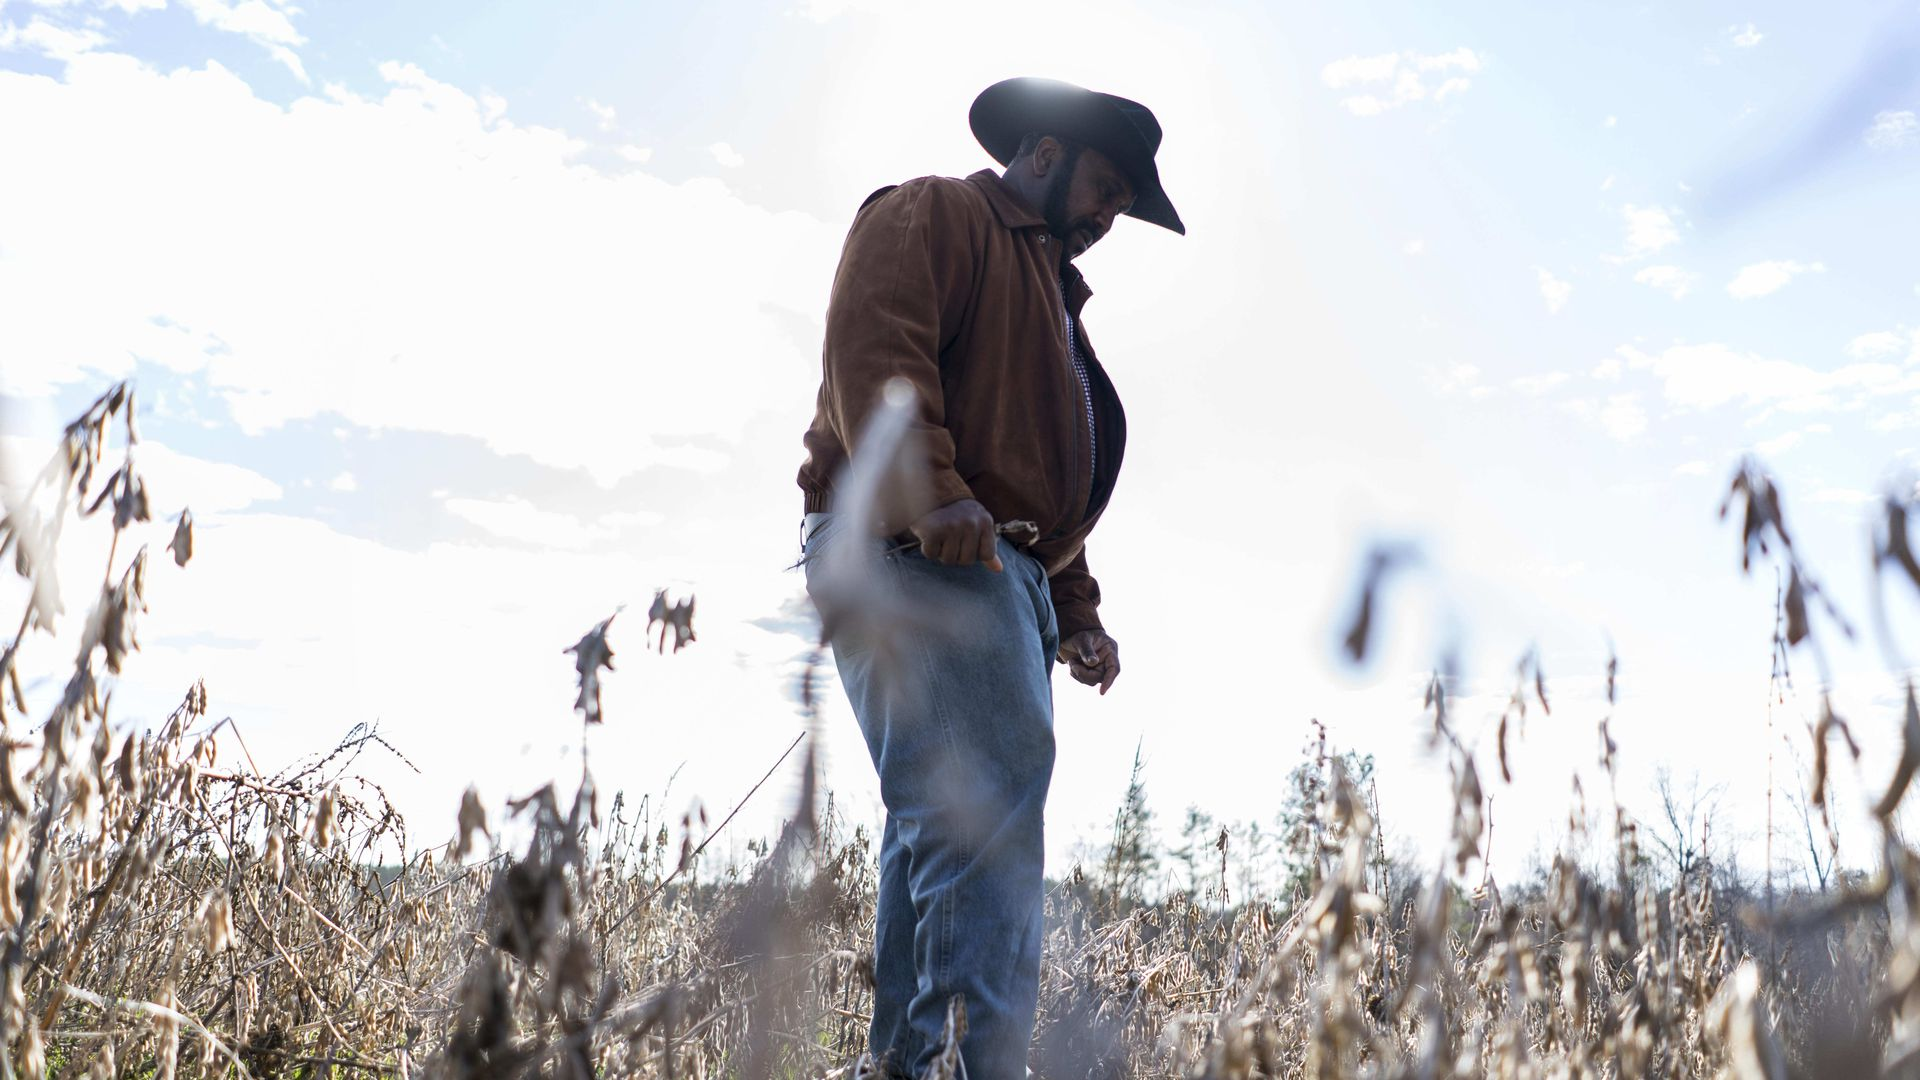 In this image, a man in a cowboy hat stands in a soybean field.